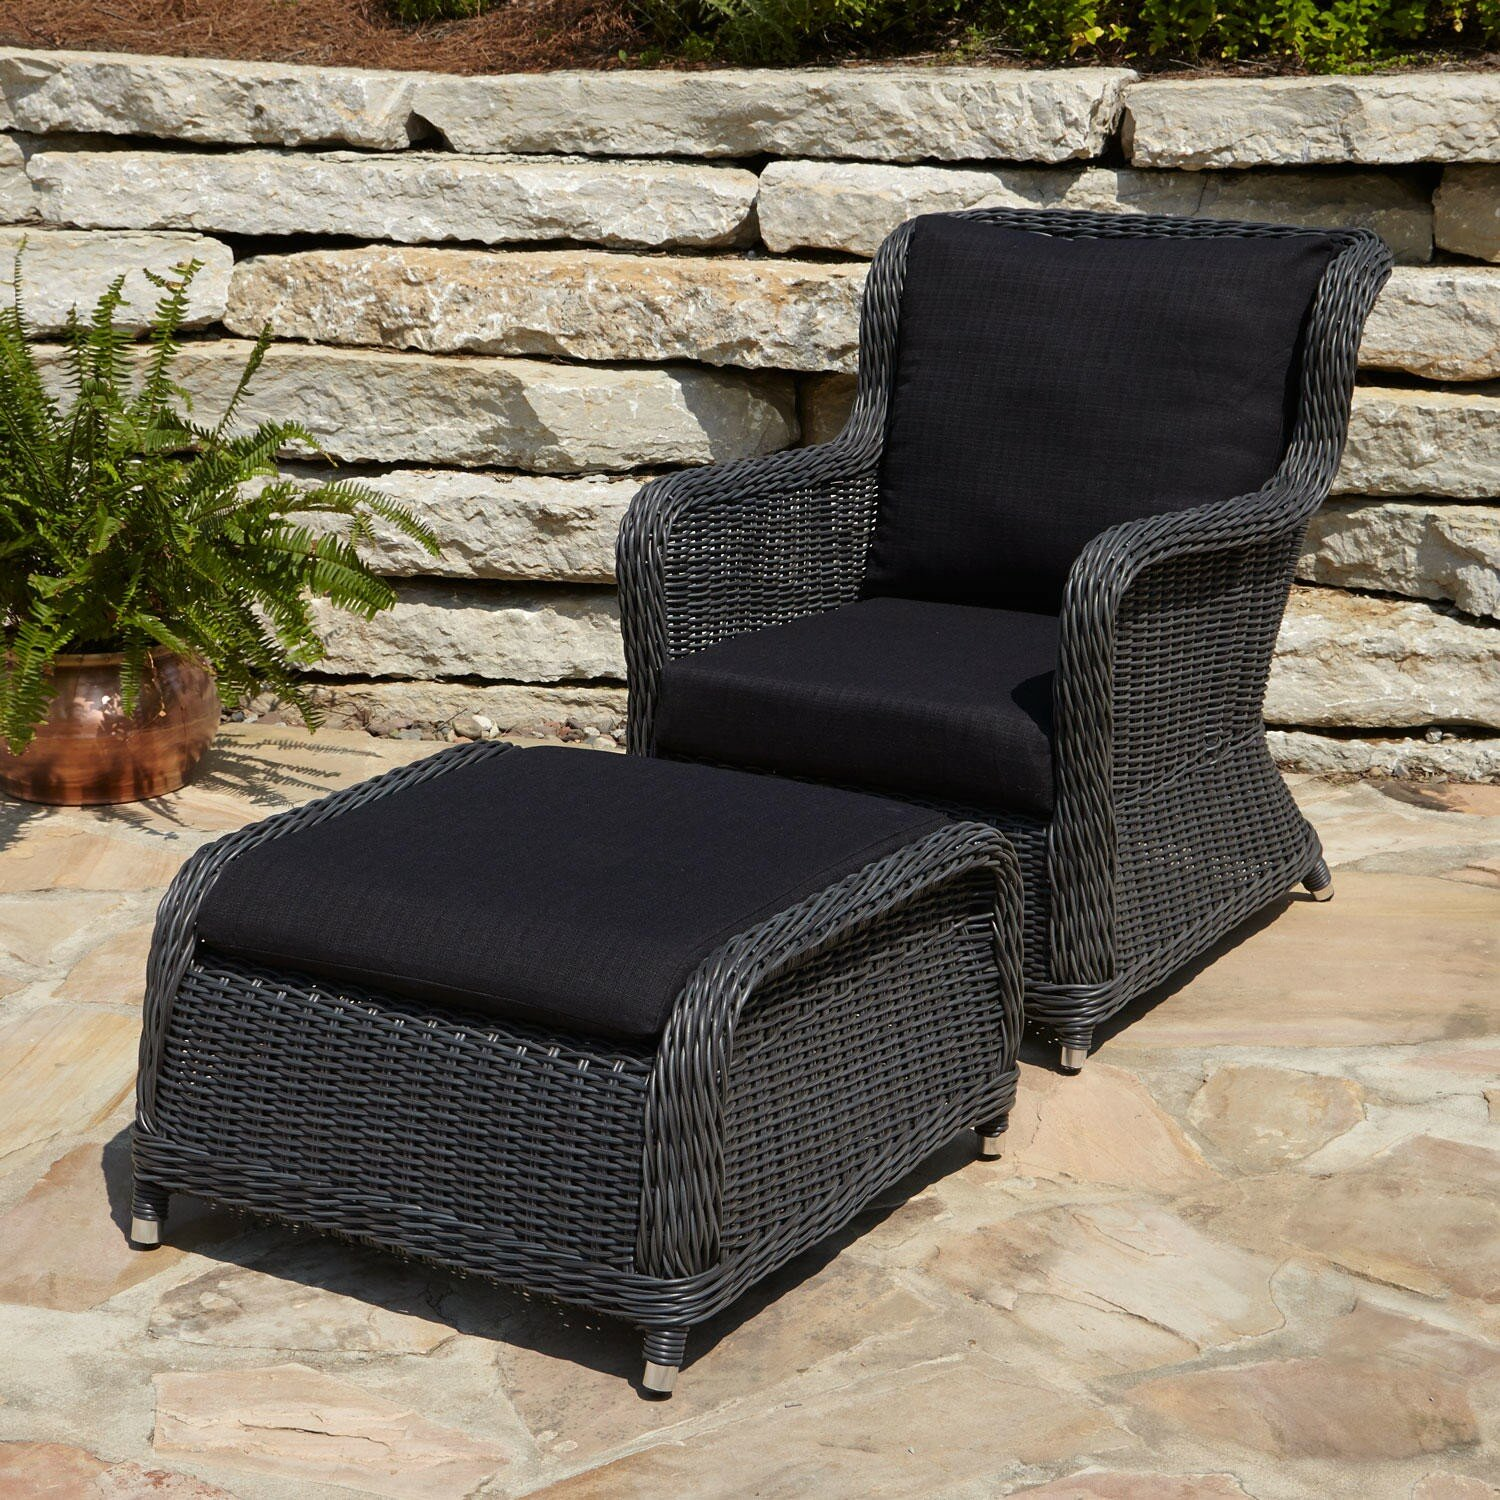 Exciting Lowes Lounge Chairs for Cozy Outdoor Chair Design Ideas: Lowes Lounge Chairs | Outdoor Chairs Lowes | Lounge Chairs Cheap